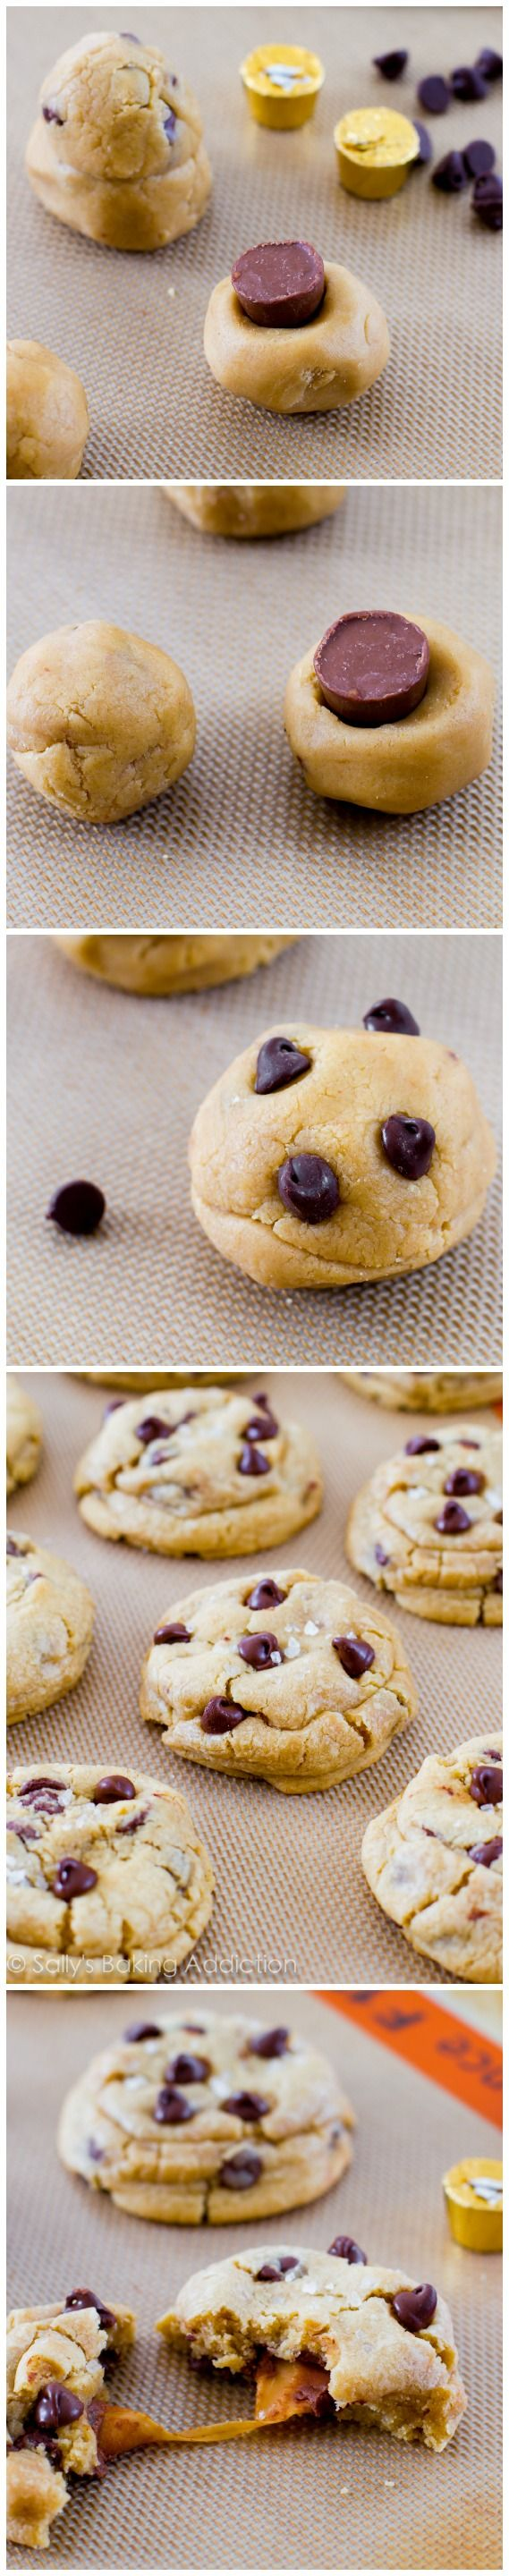 Salted Caramel Chocolate Chip Cookies | Recipe | Salted ...